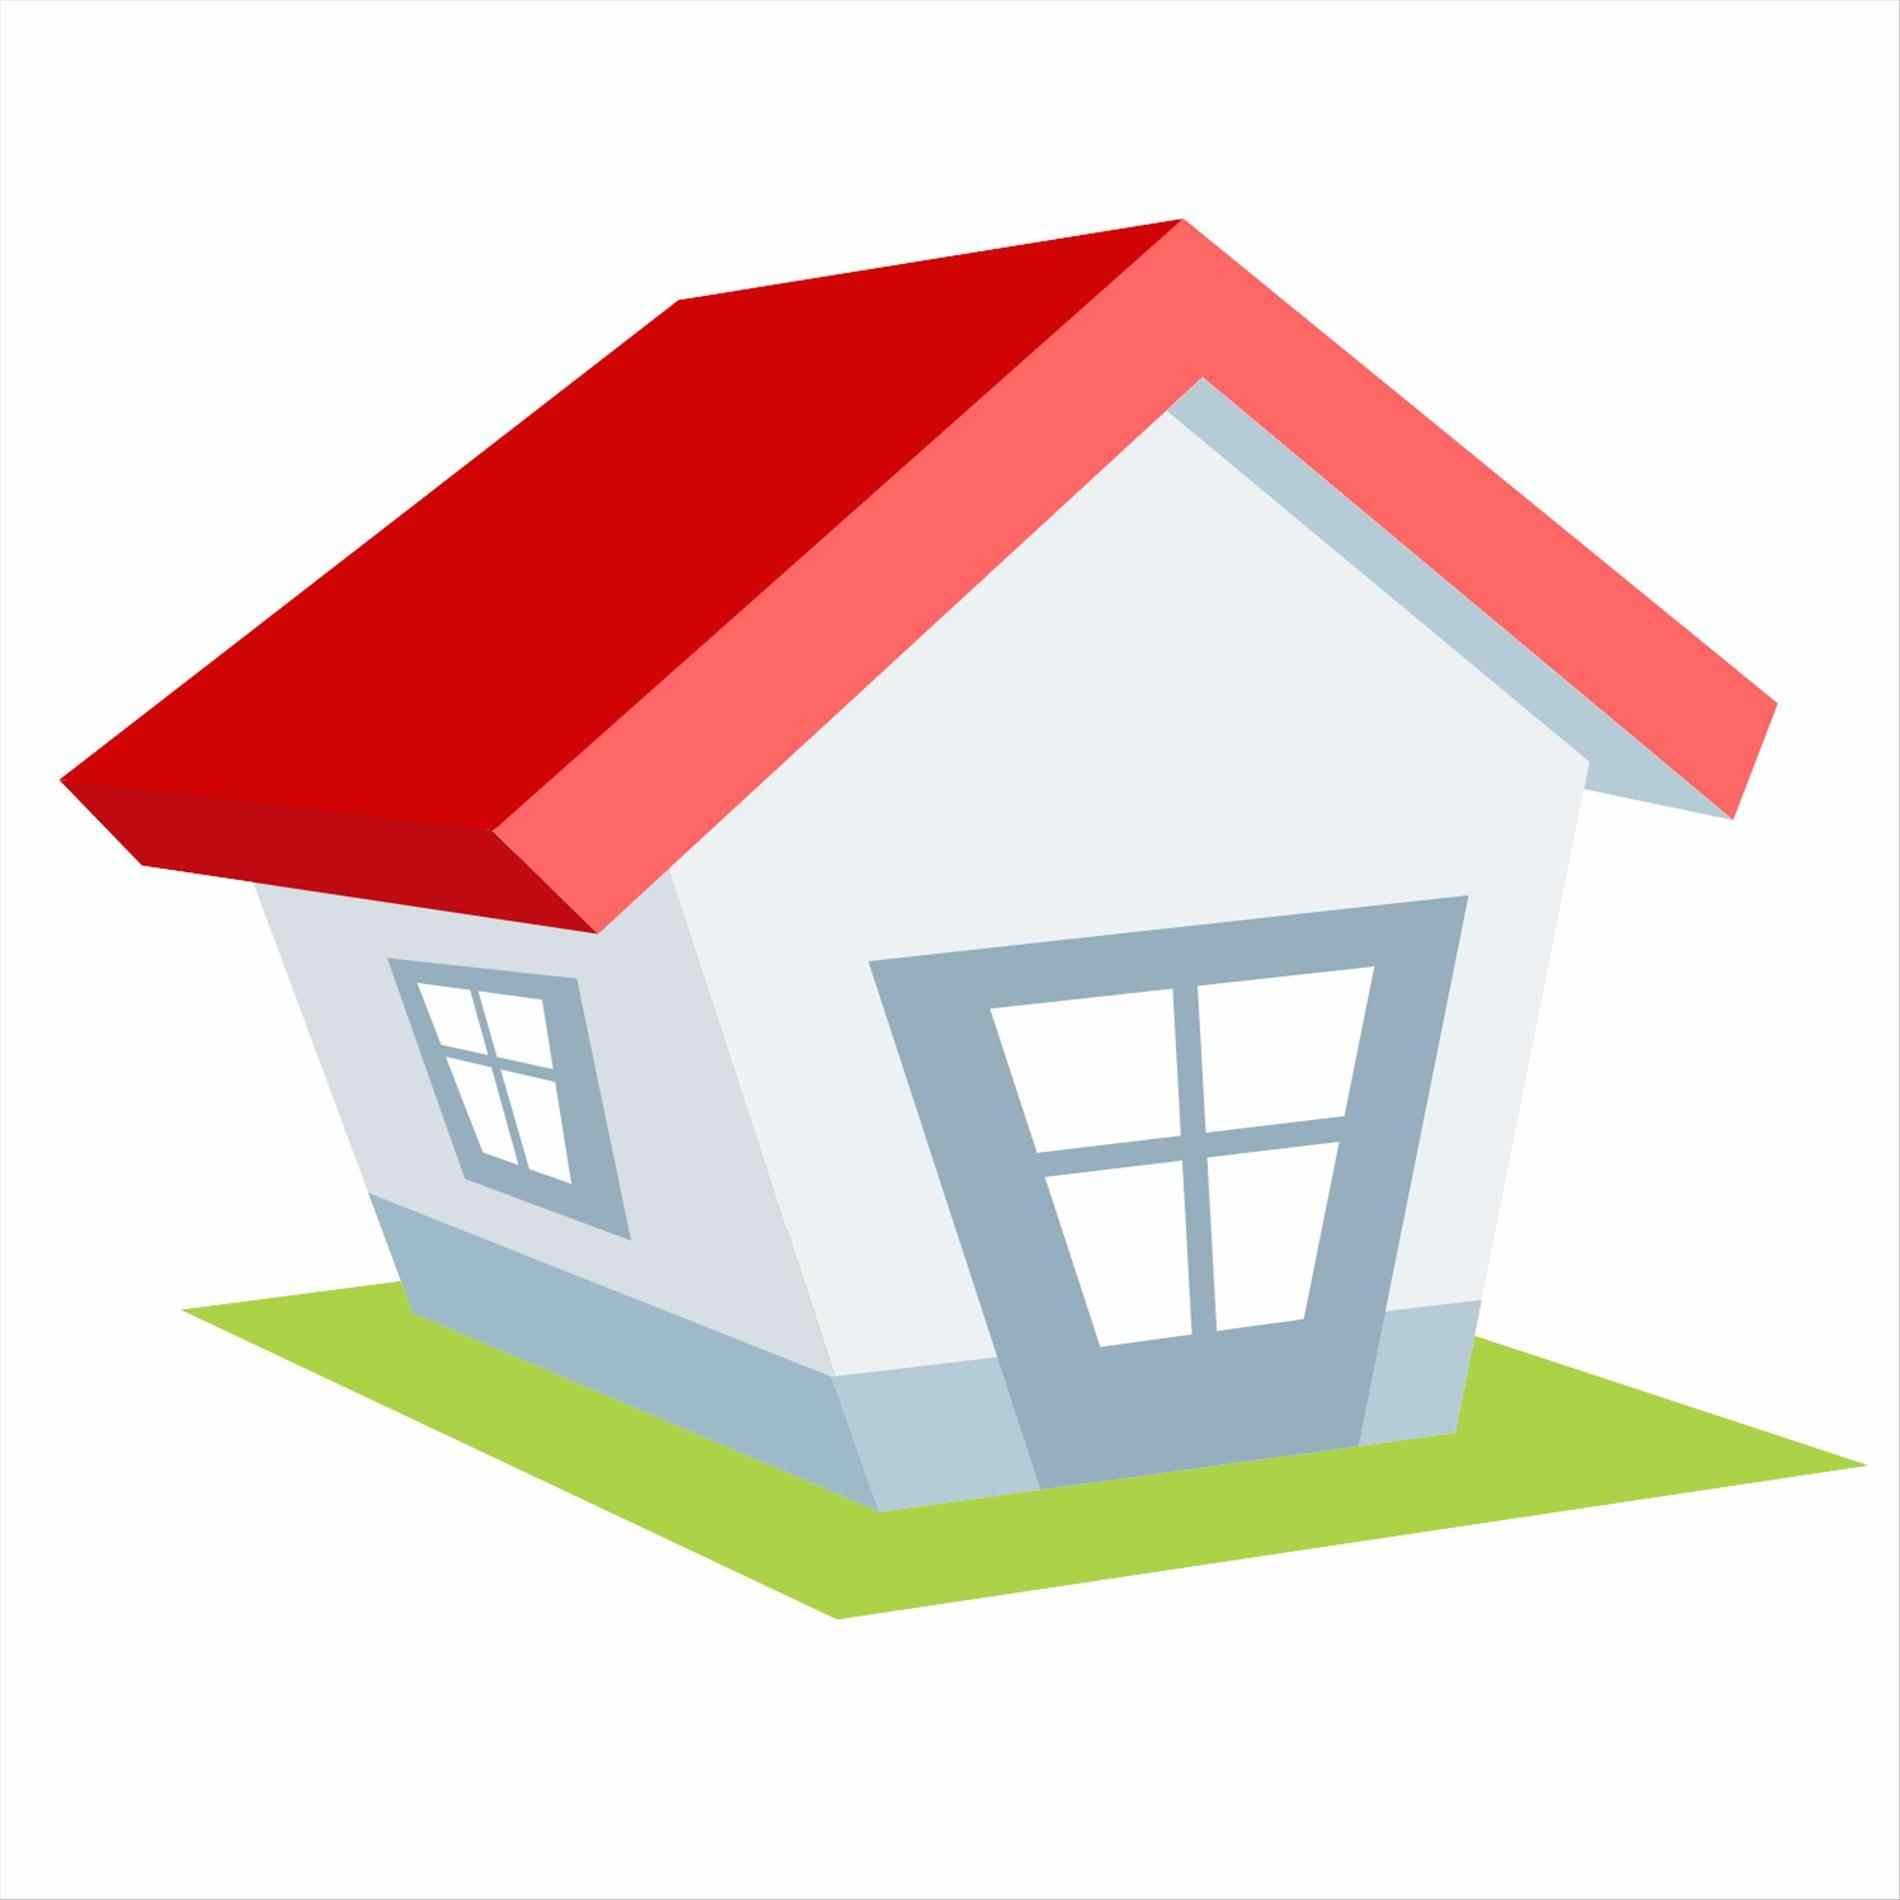 1900x1900 Roof House Roof Vector Png Roofs